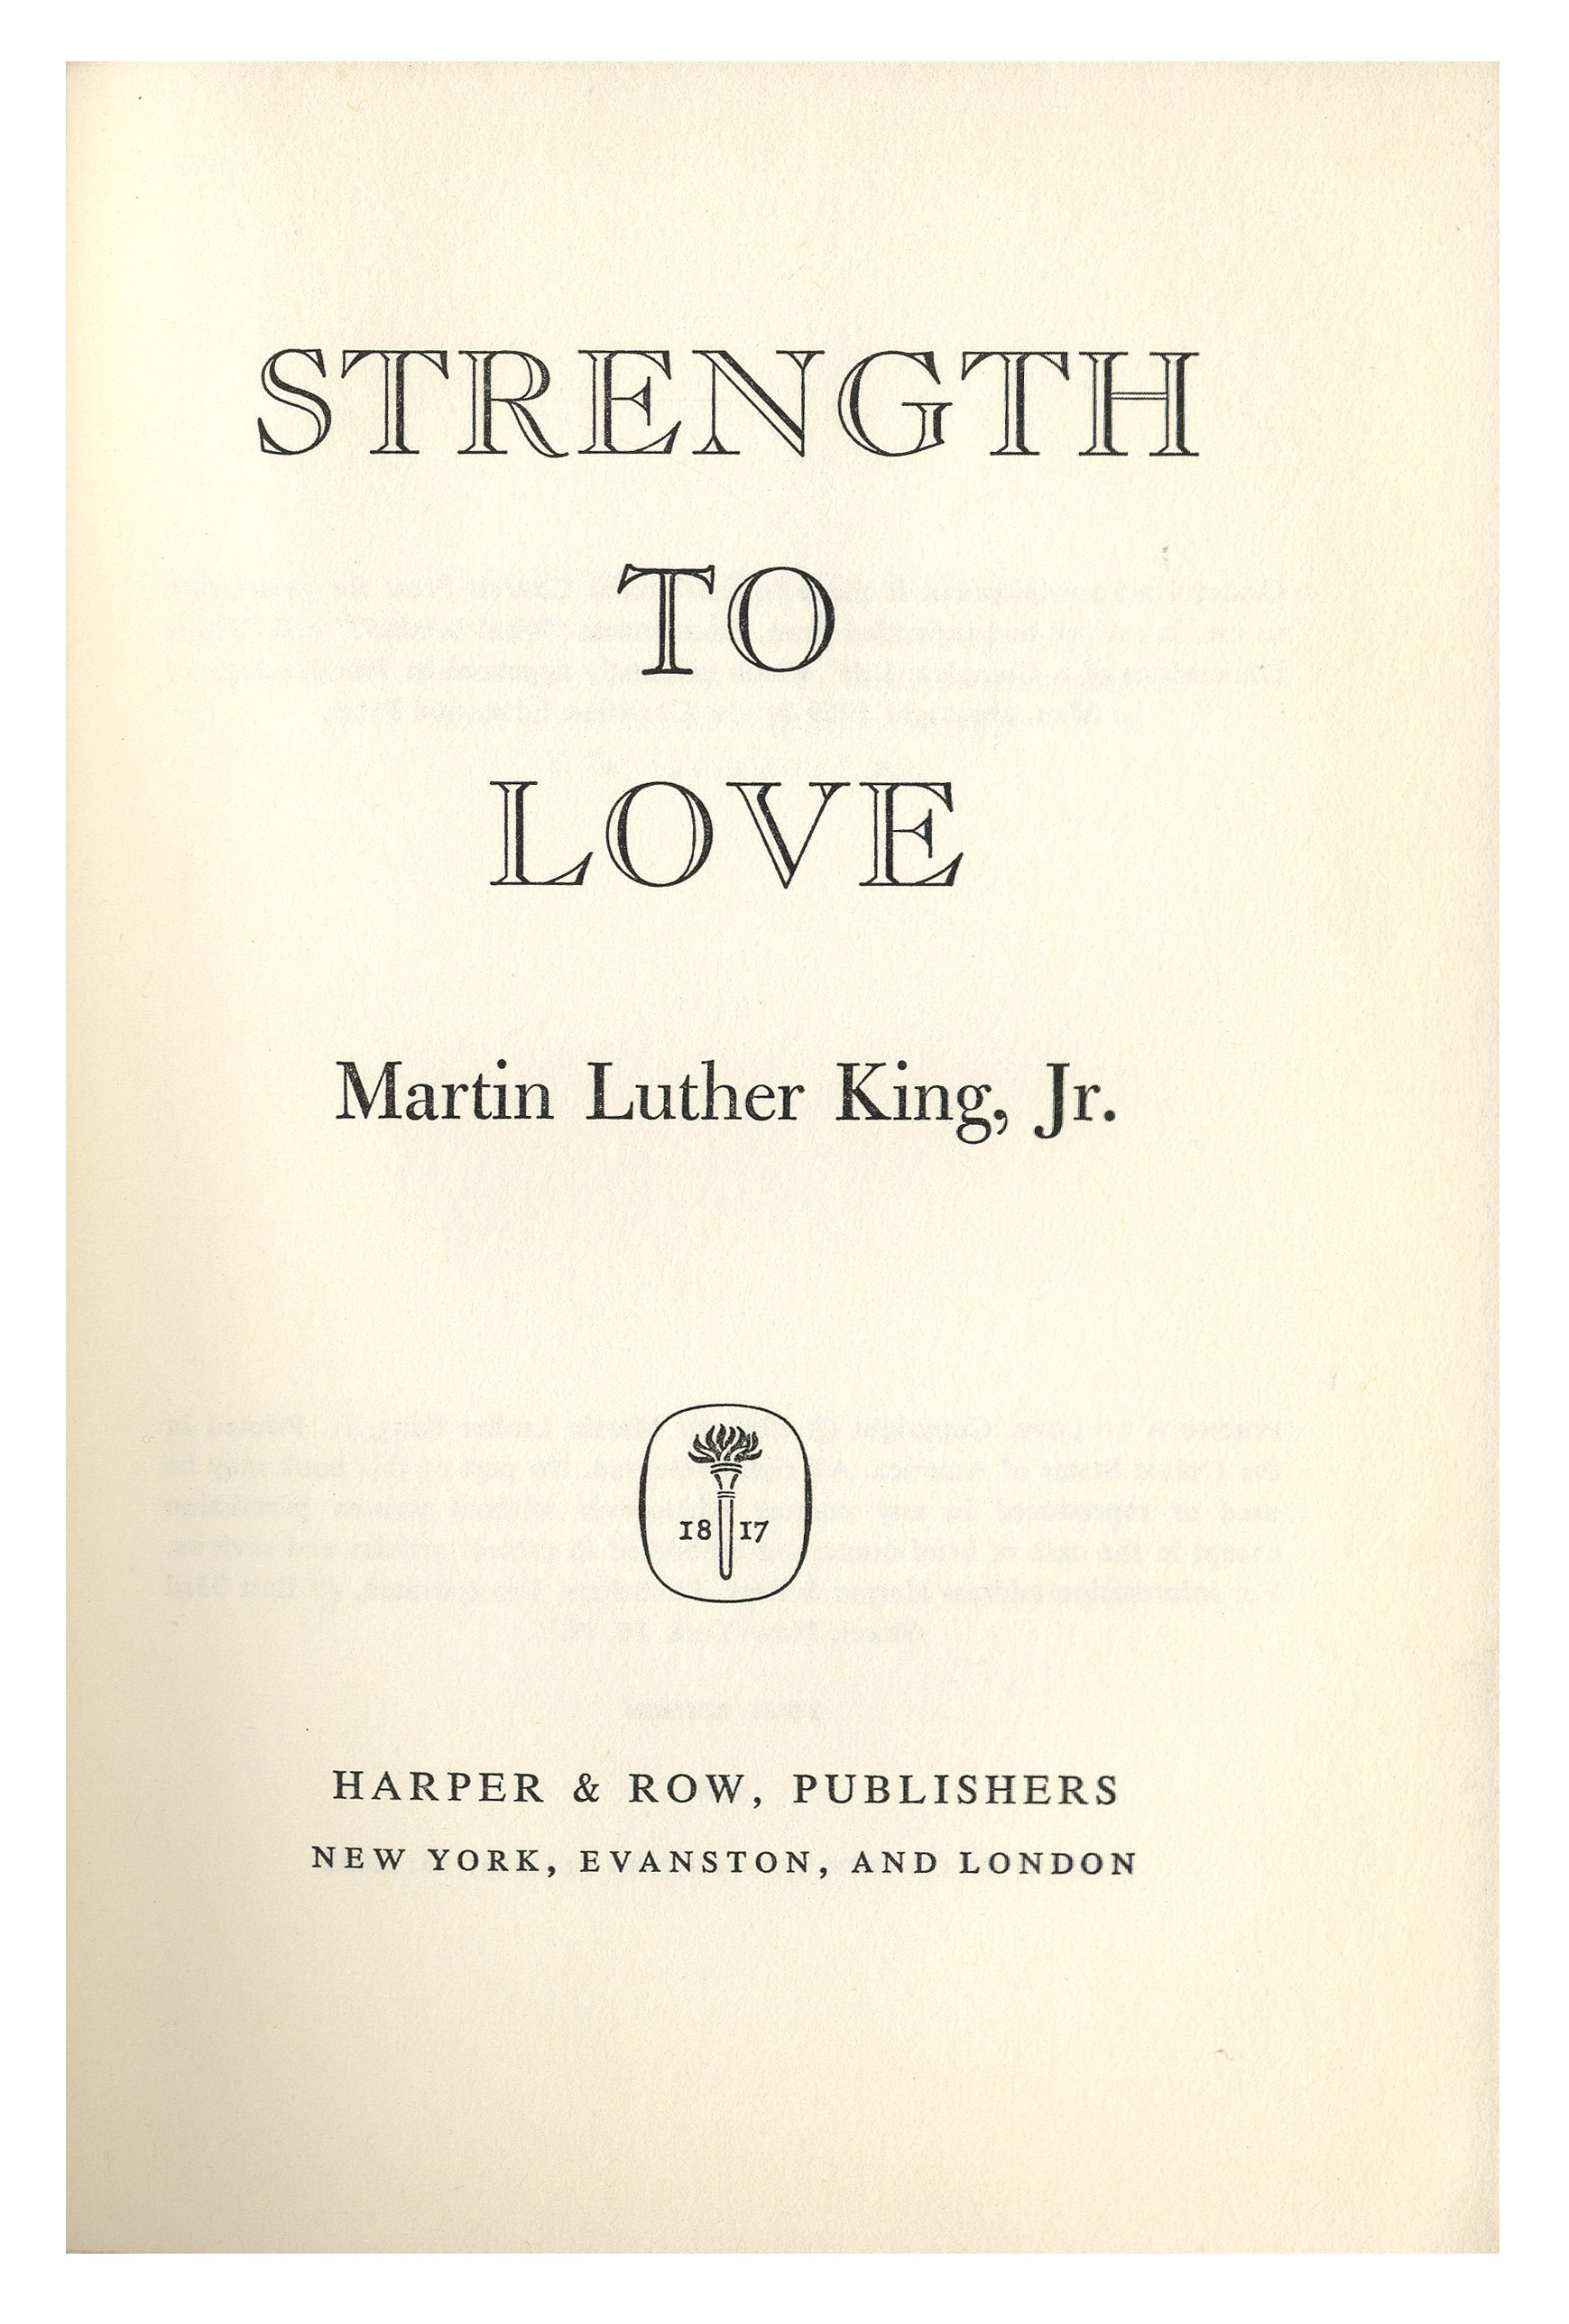 an analysis of the strength to love by martin luther king jr History will remember martin luther king jr as one of the most transformational figures of all time in strength to love, he expressed his principals of.